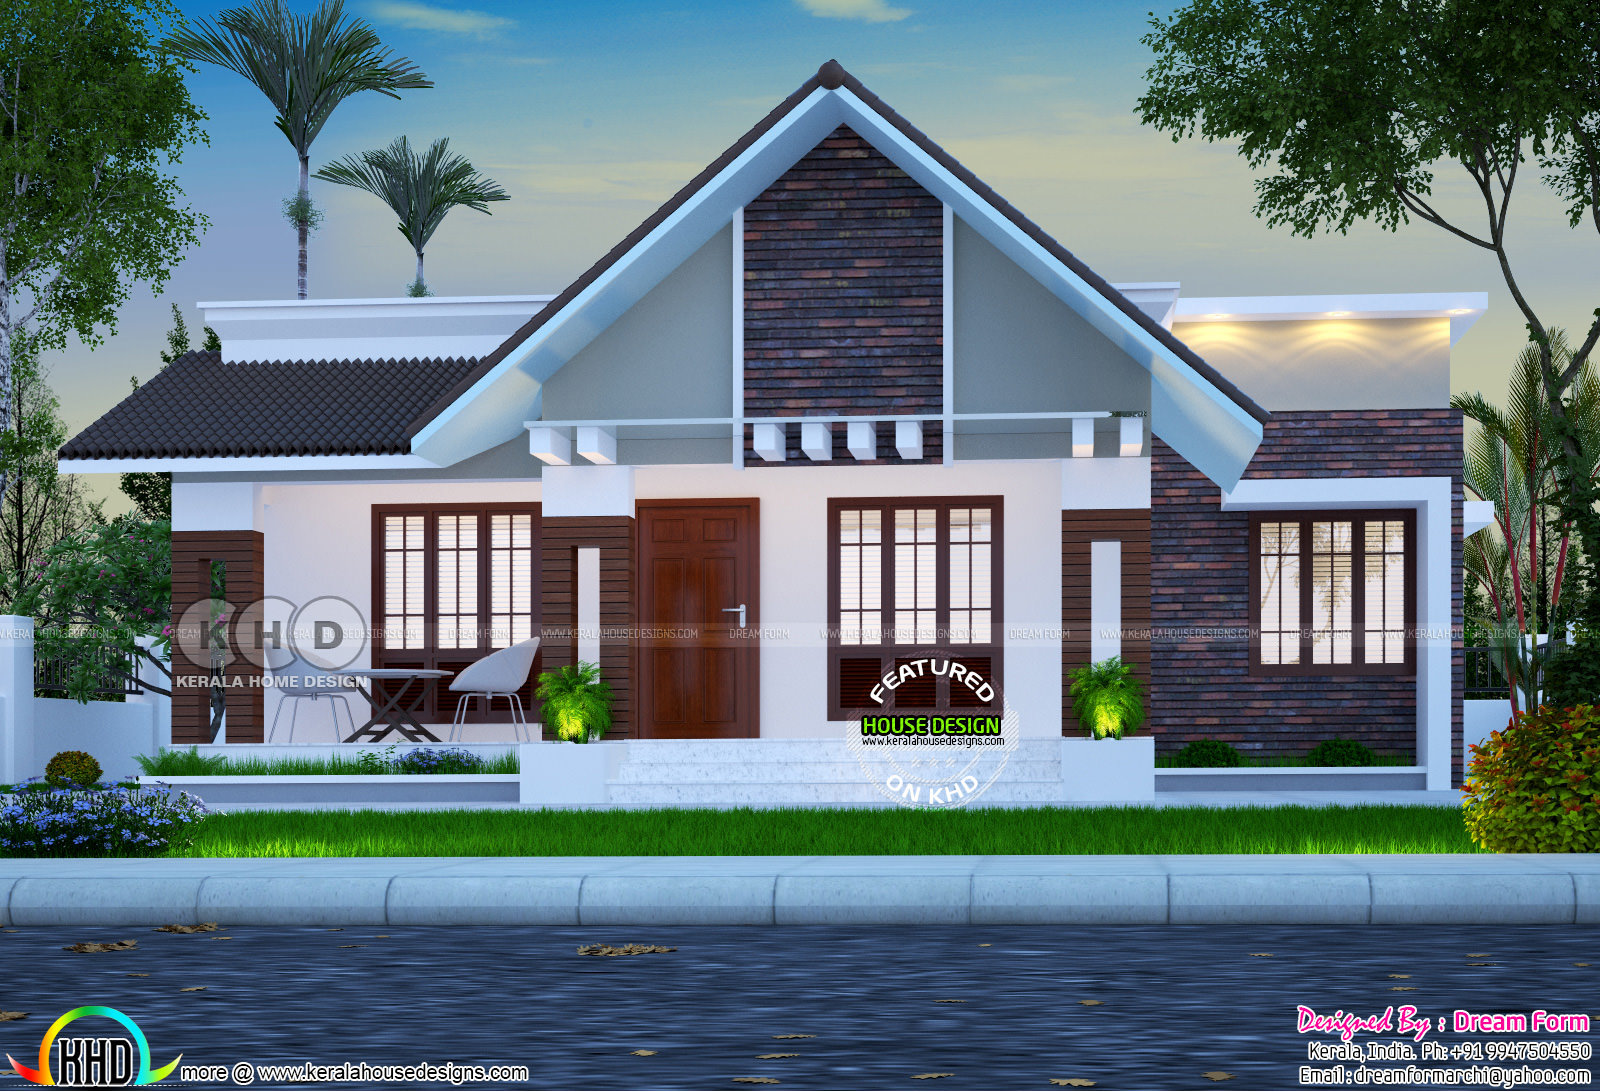 Superb low cost house plan kerala home design and floor for Kerala home designs low cost